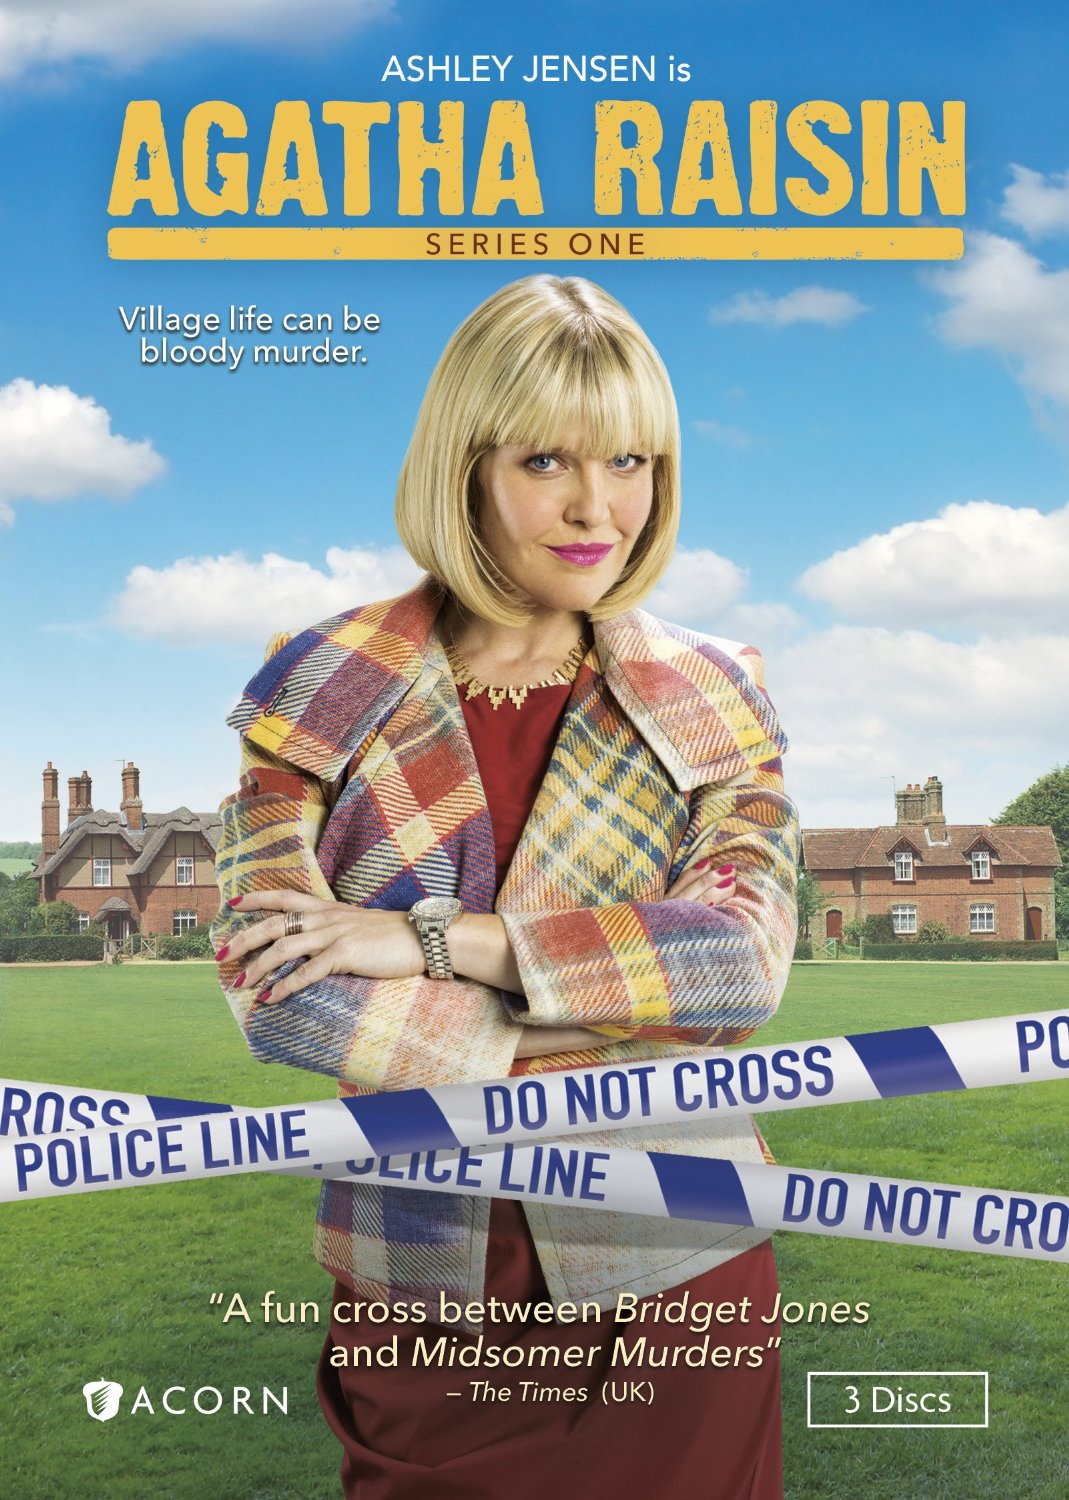 agatha raisin  Agatha Raisin (TV Series 2014– ) - IMDb